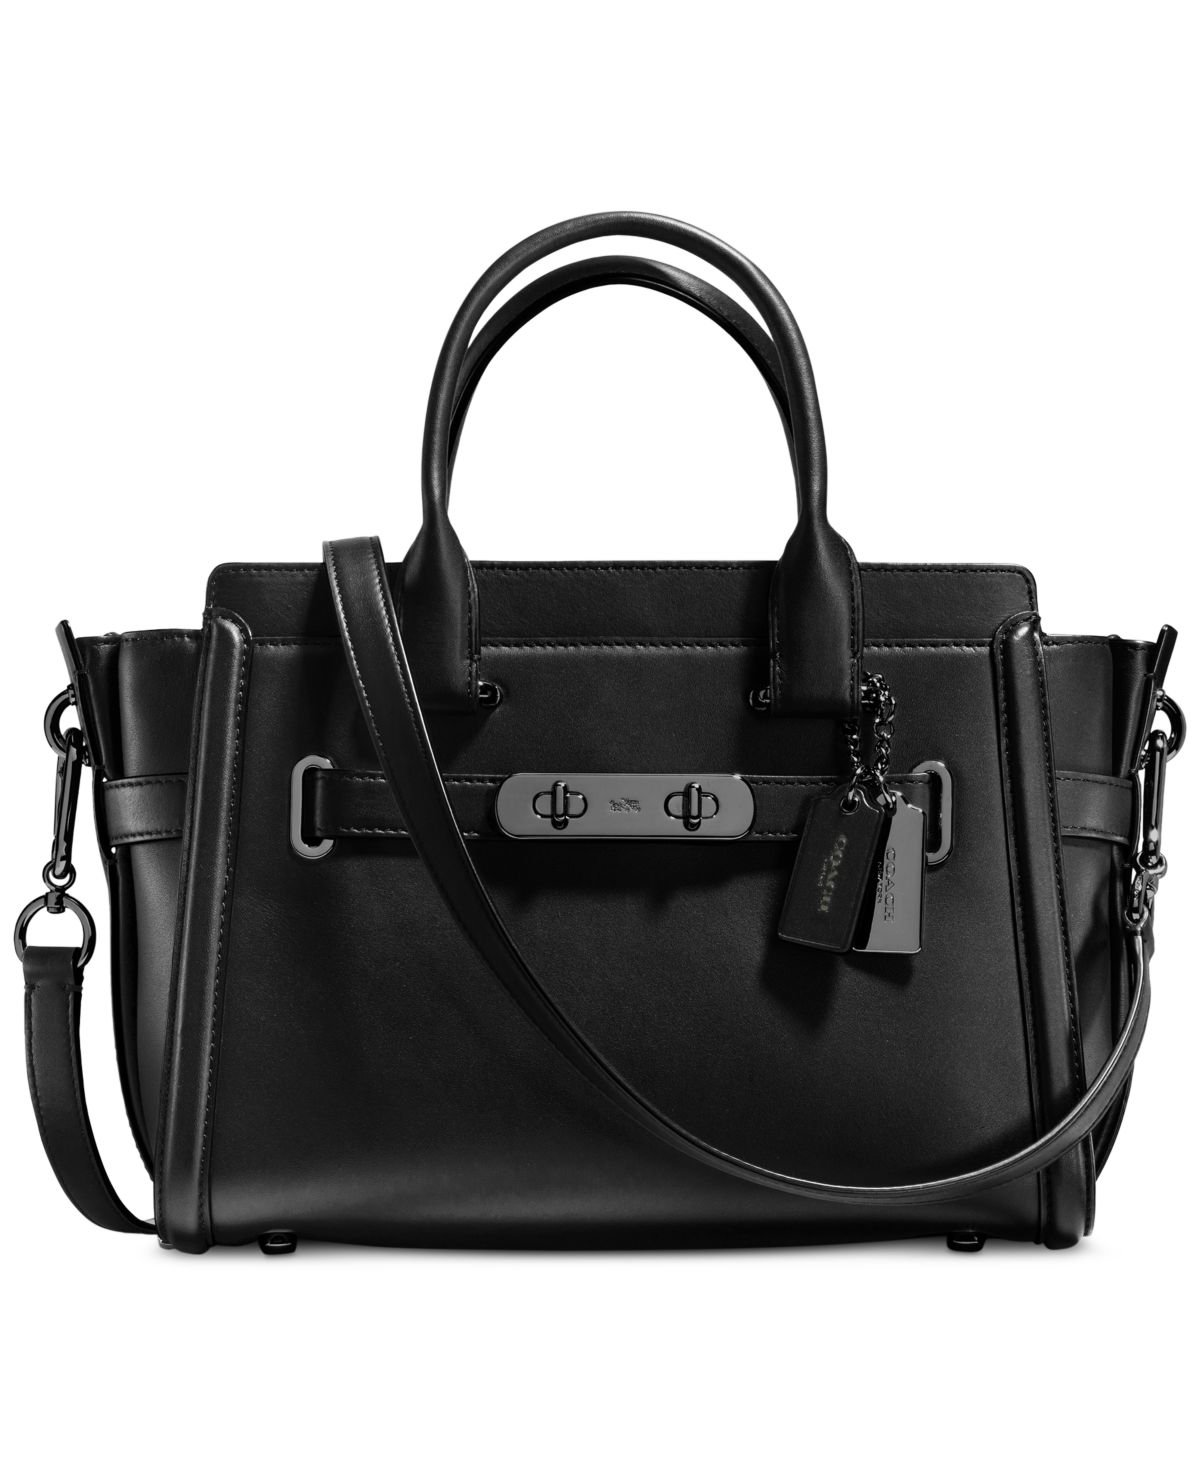 COACH Women's Glovetan Coach Swagger 27 DK/Black Satchel